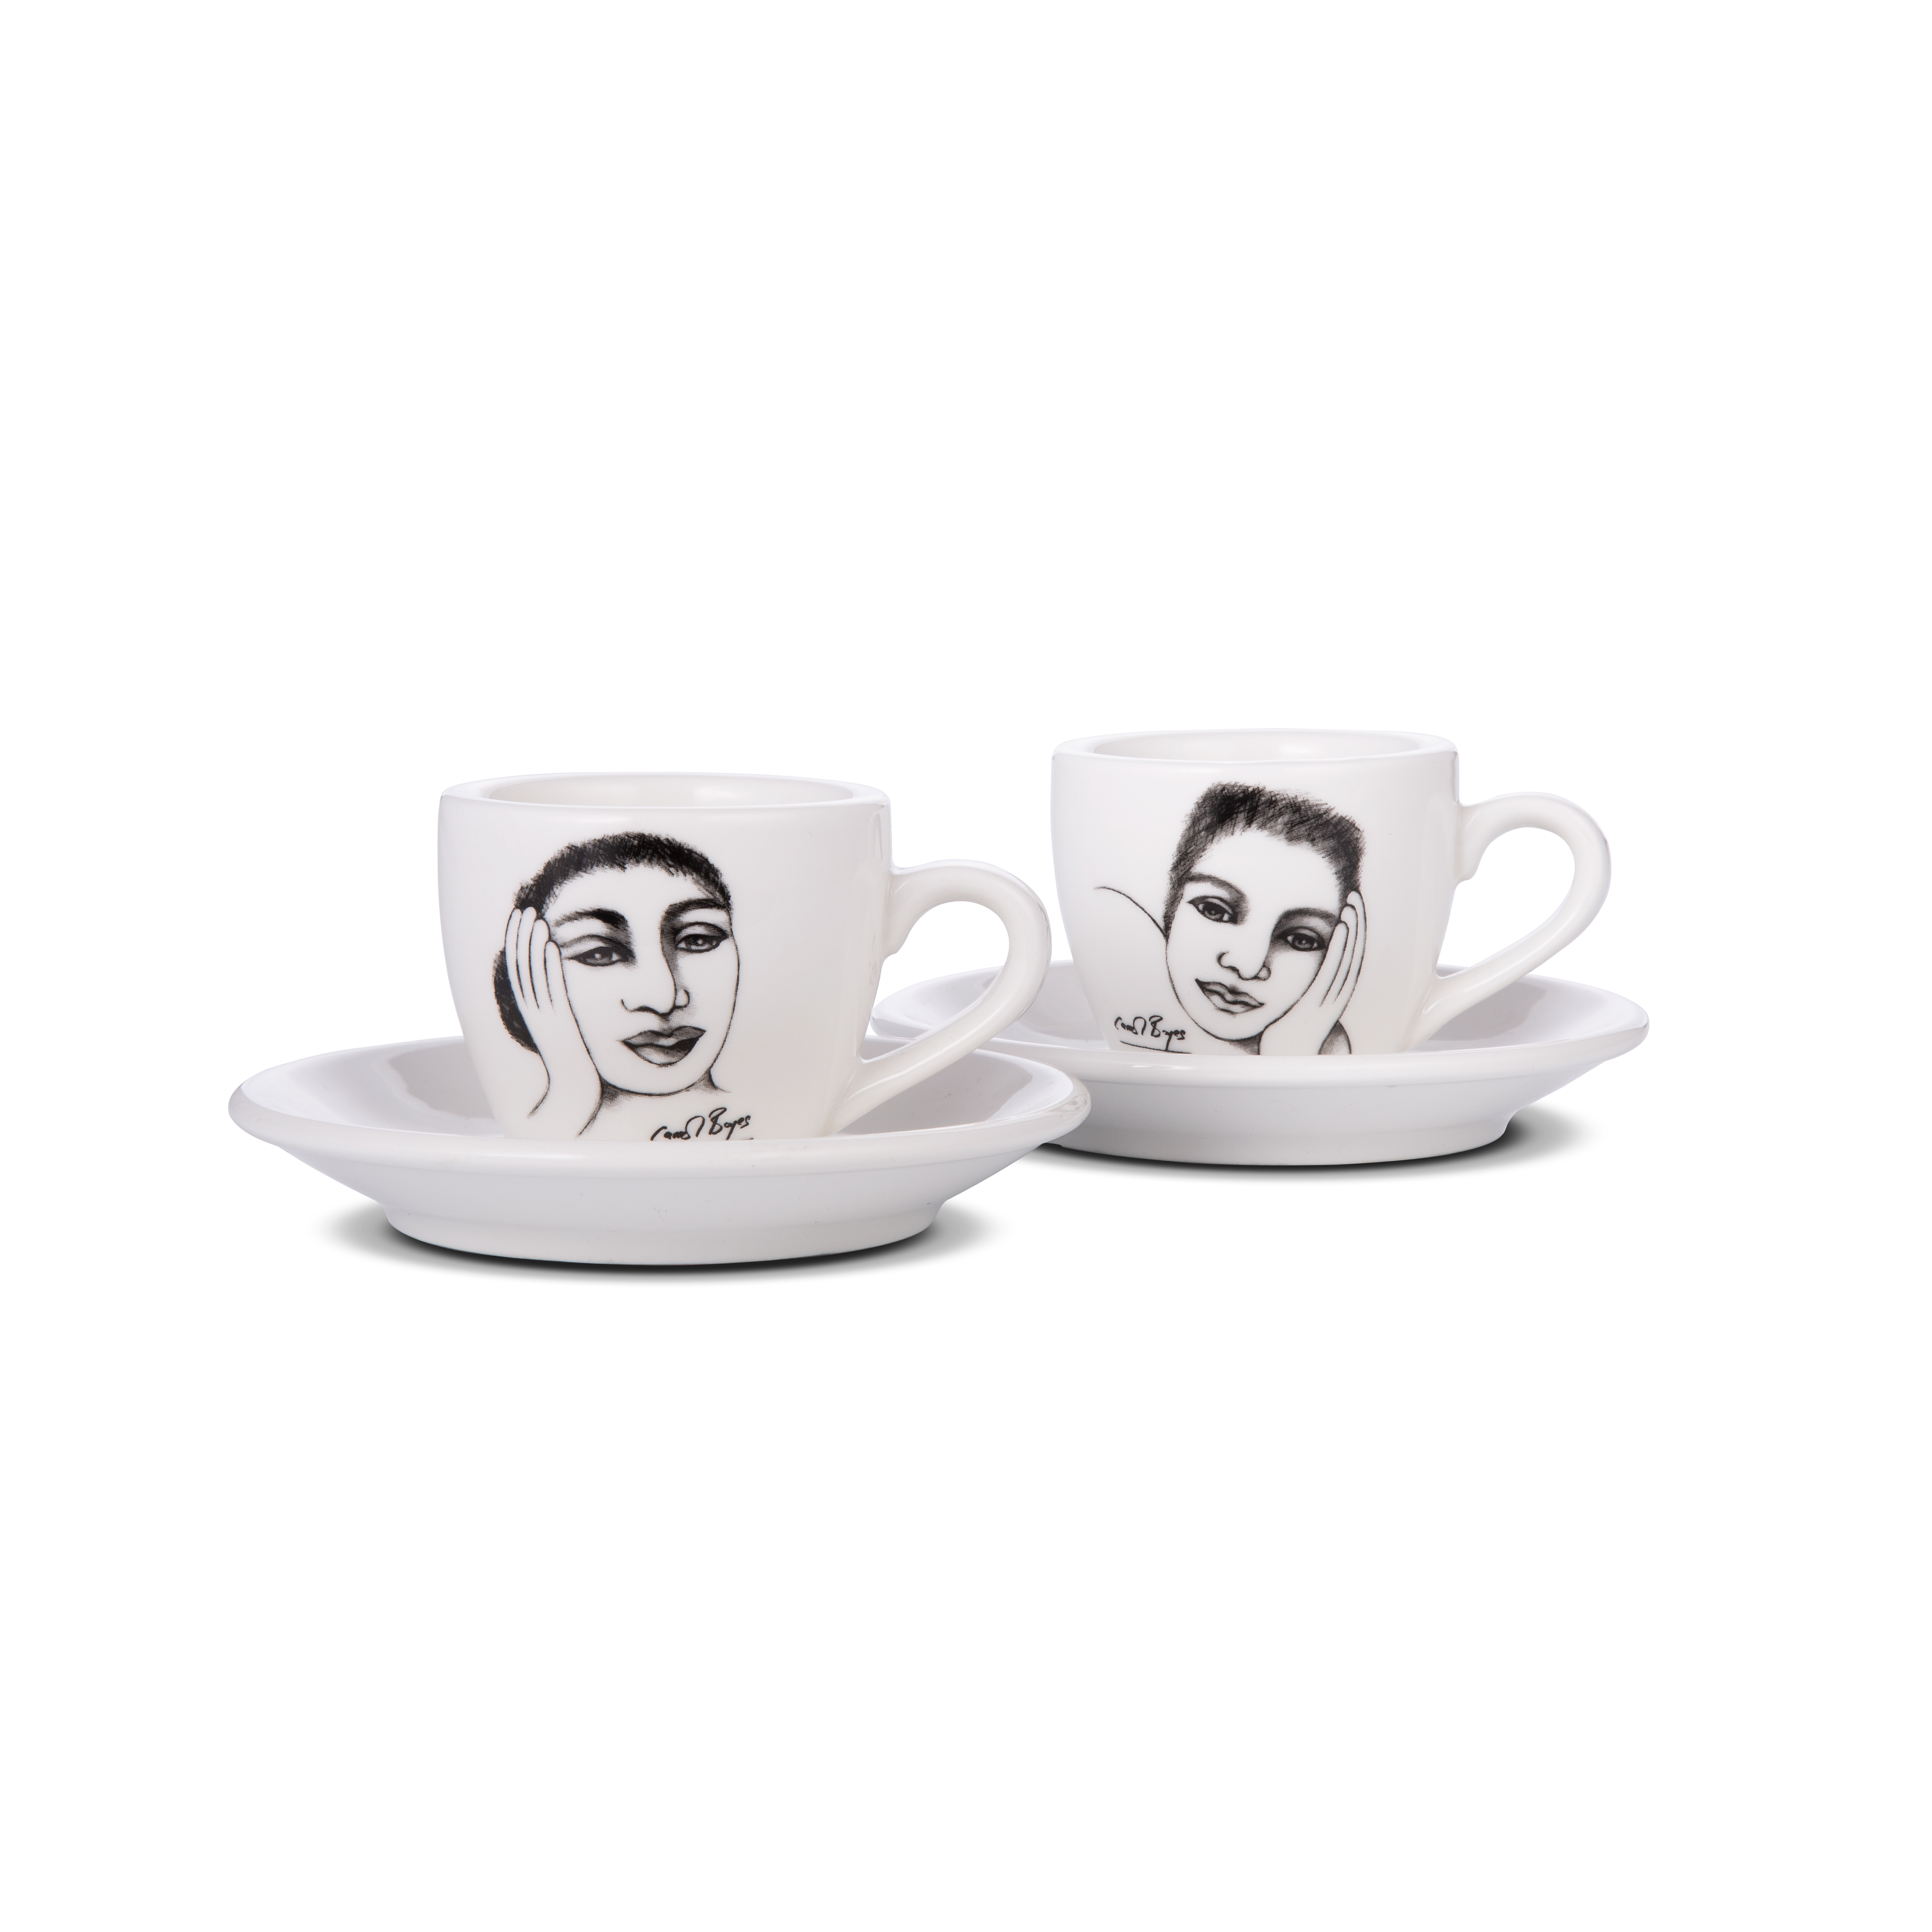 ESPRESSO CUP SET OF 2 - short and sweet